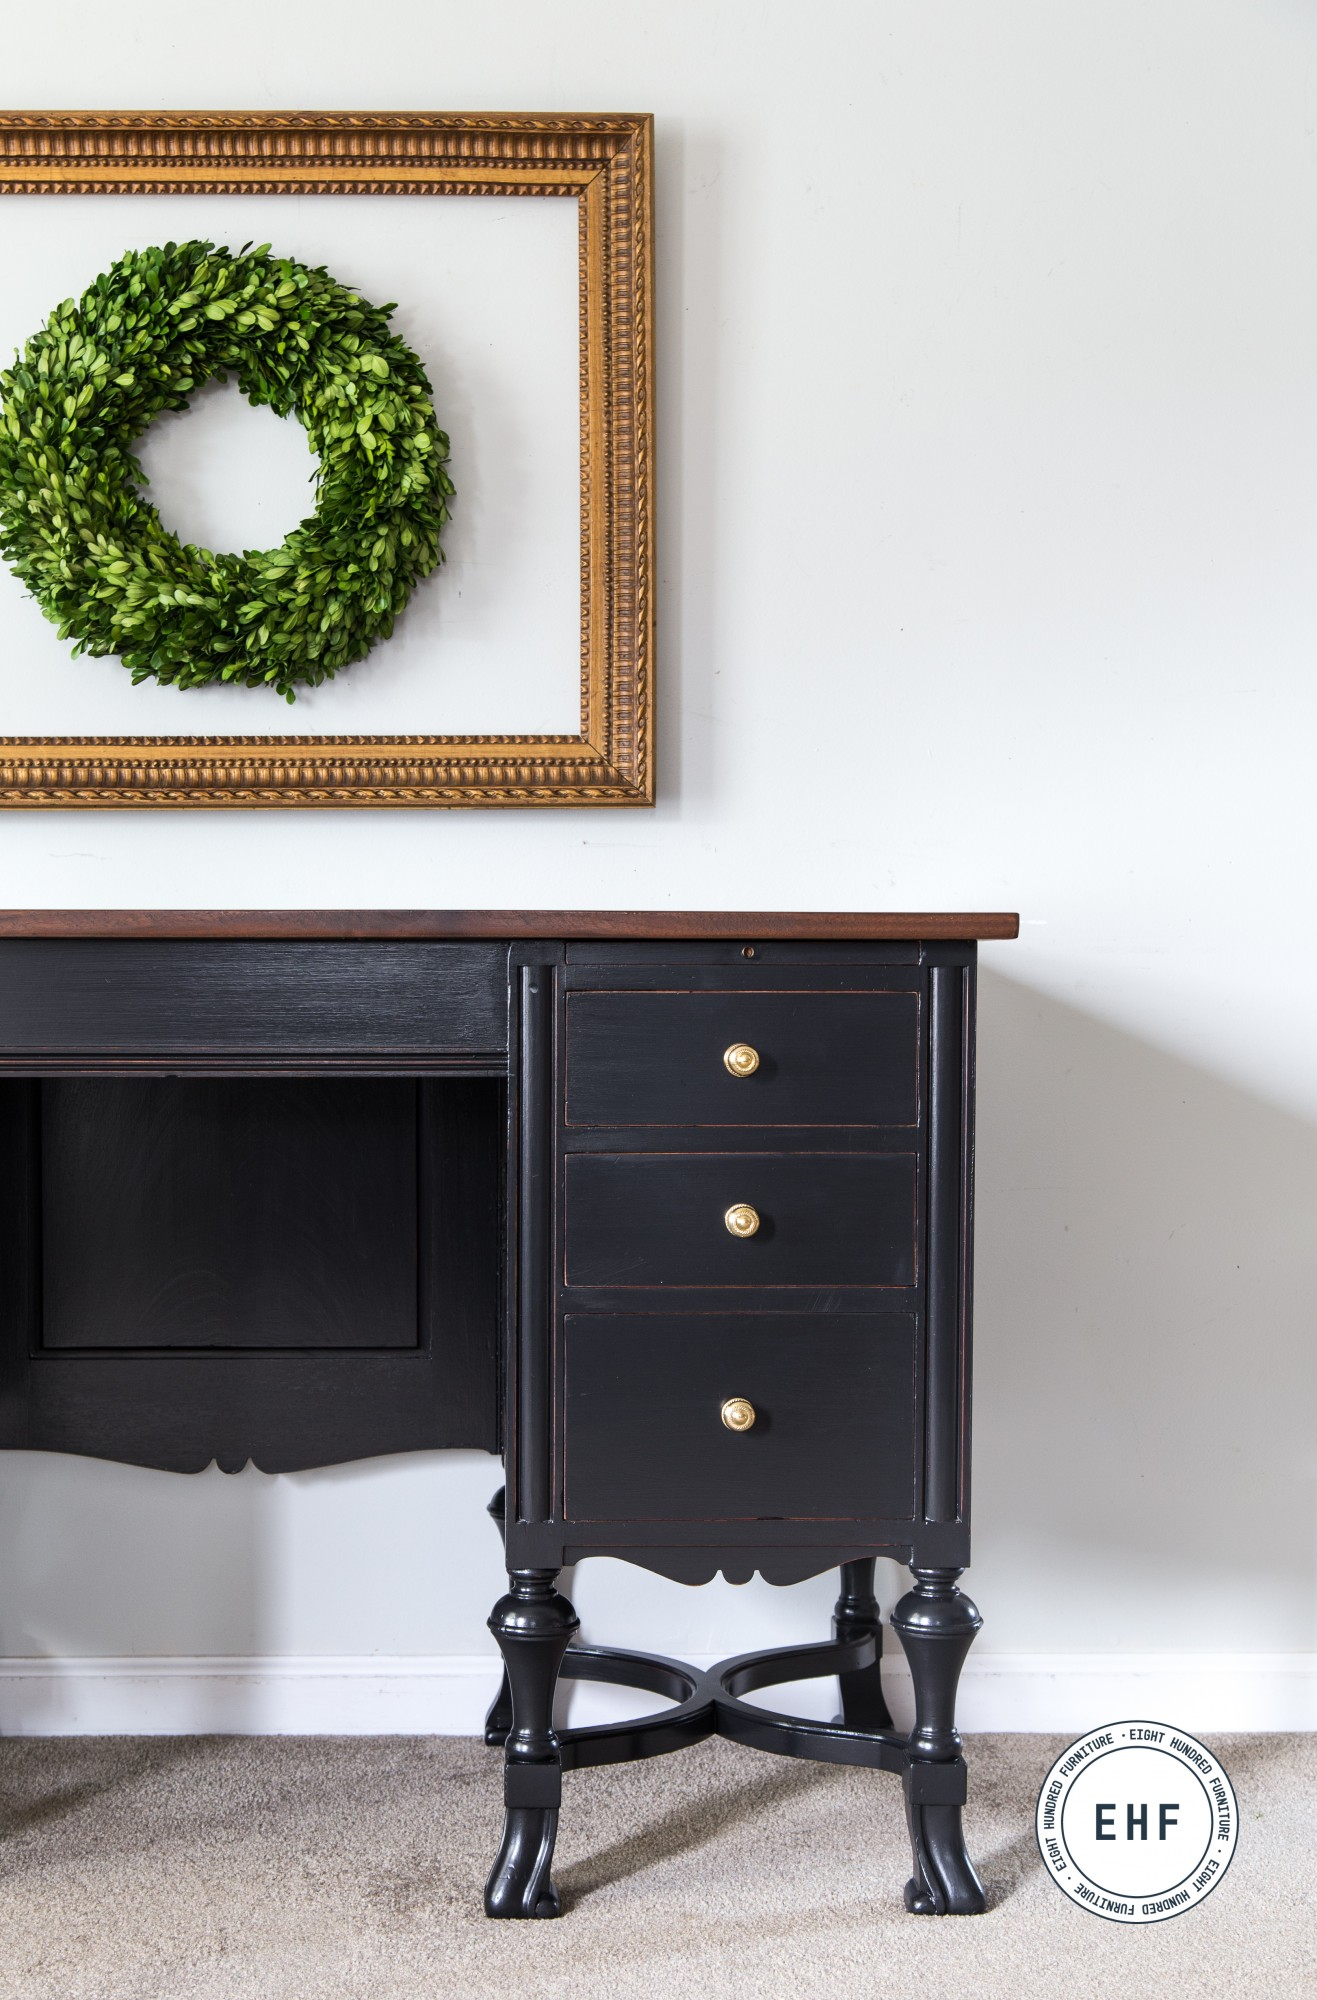 Antique typewriter desk in General Finishes Lamp Black Milk Paint with Arm-R-Seal on top